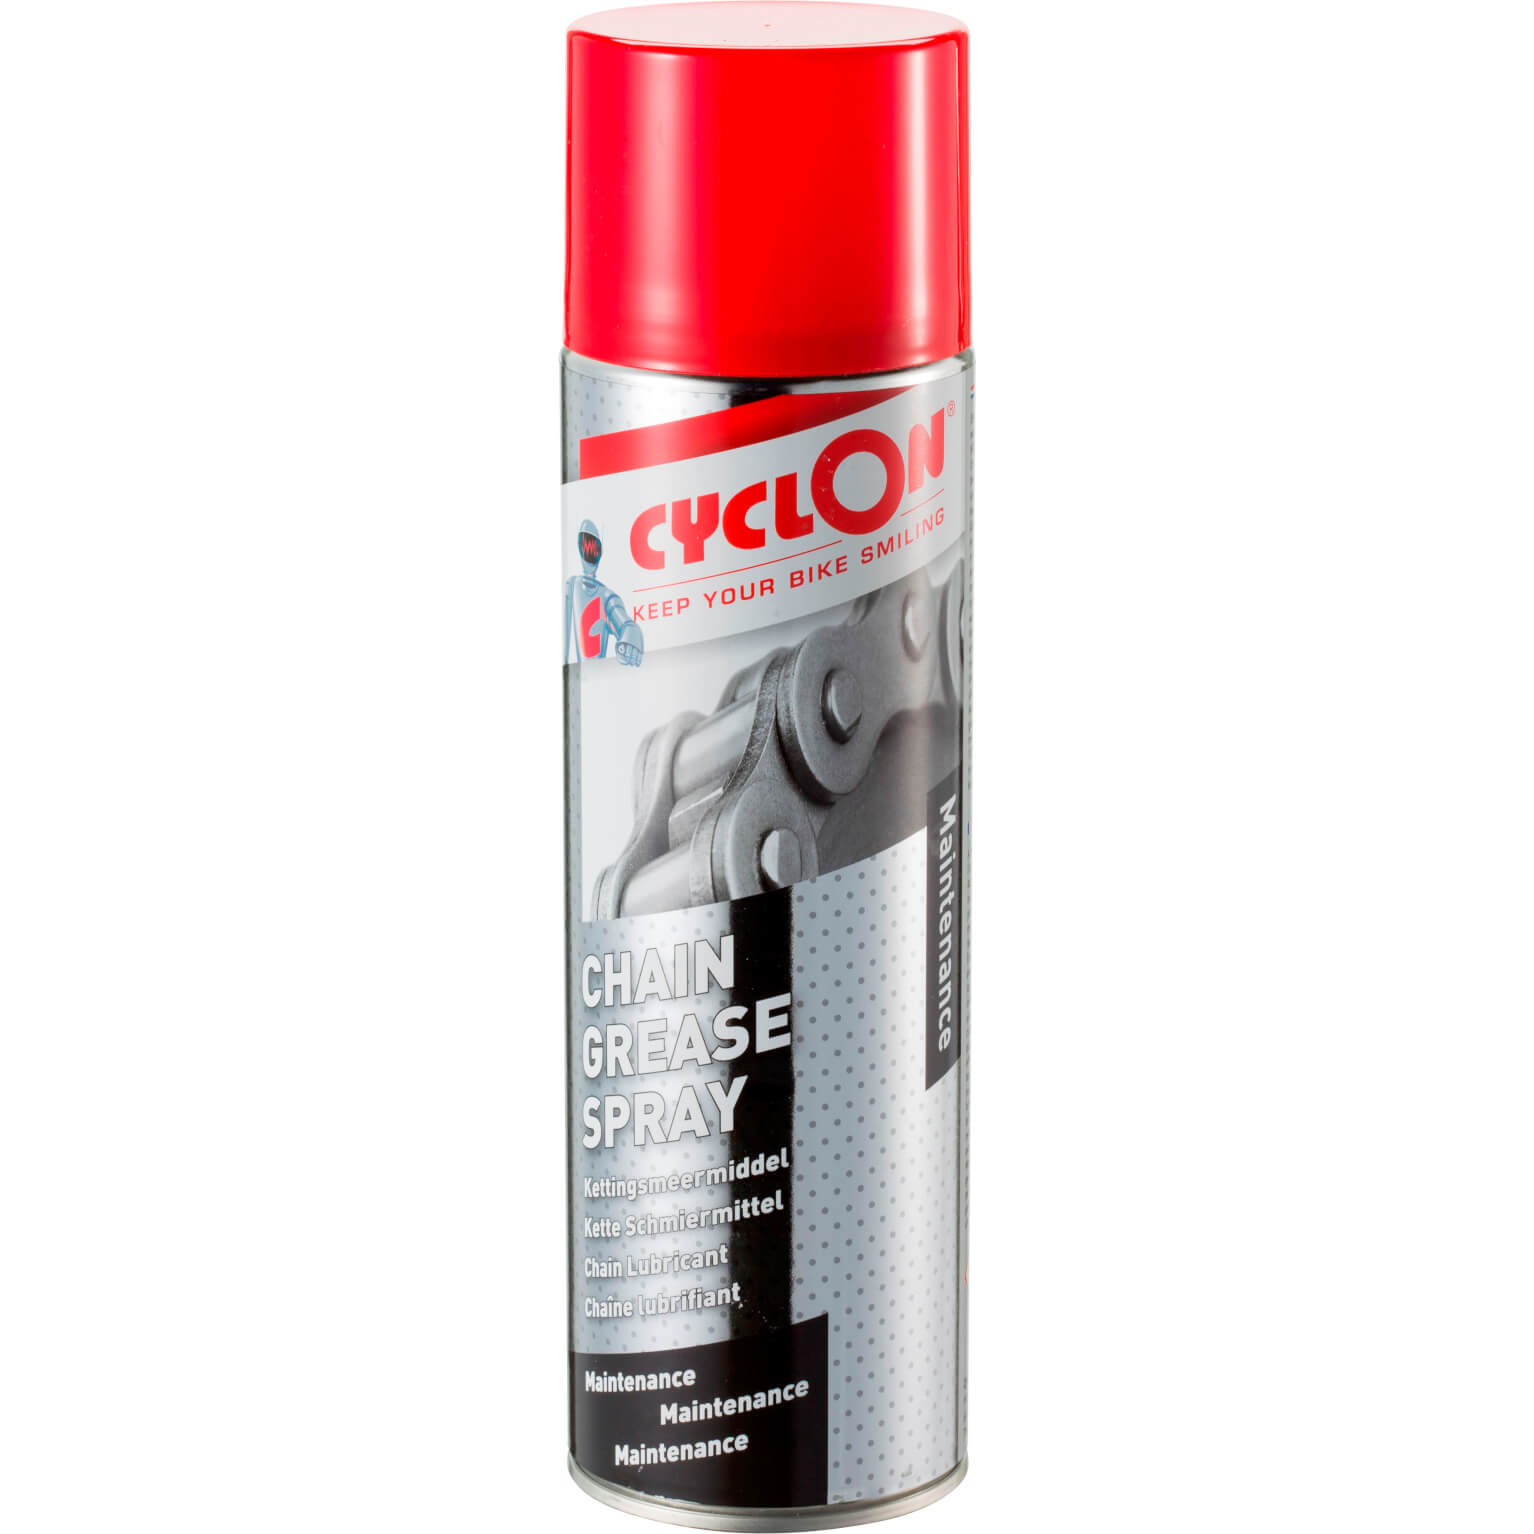 Cyclon Chain Grease Spray 500ml